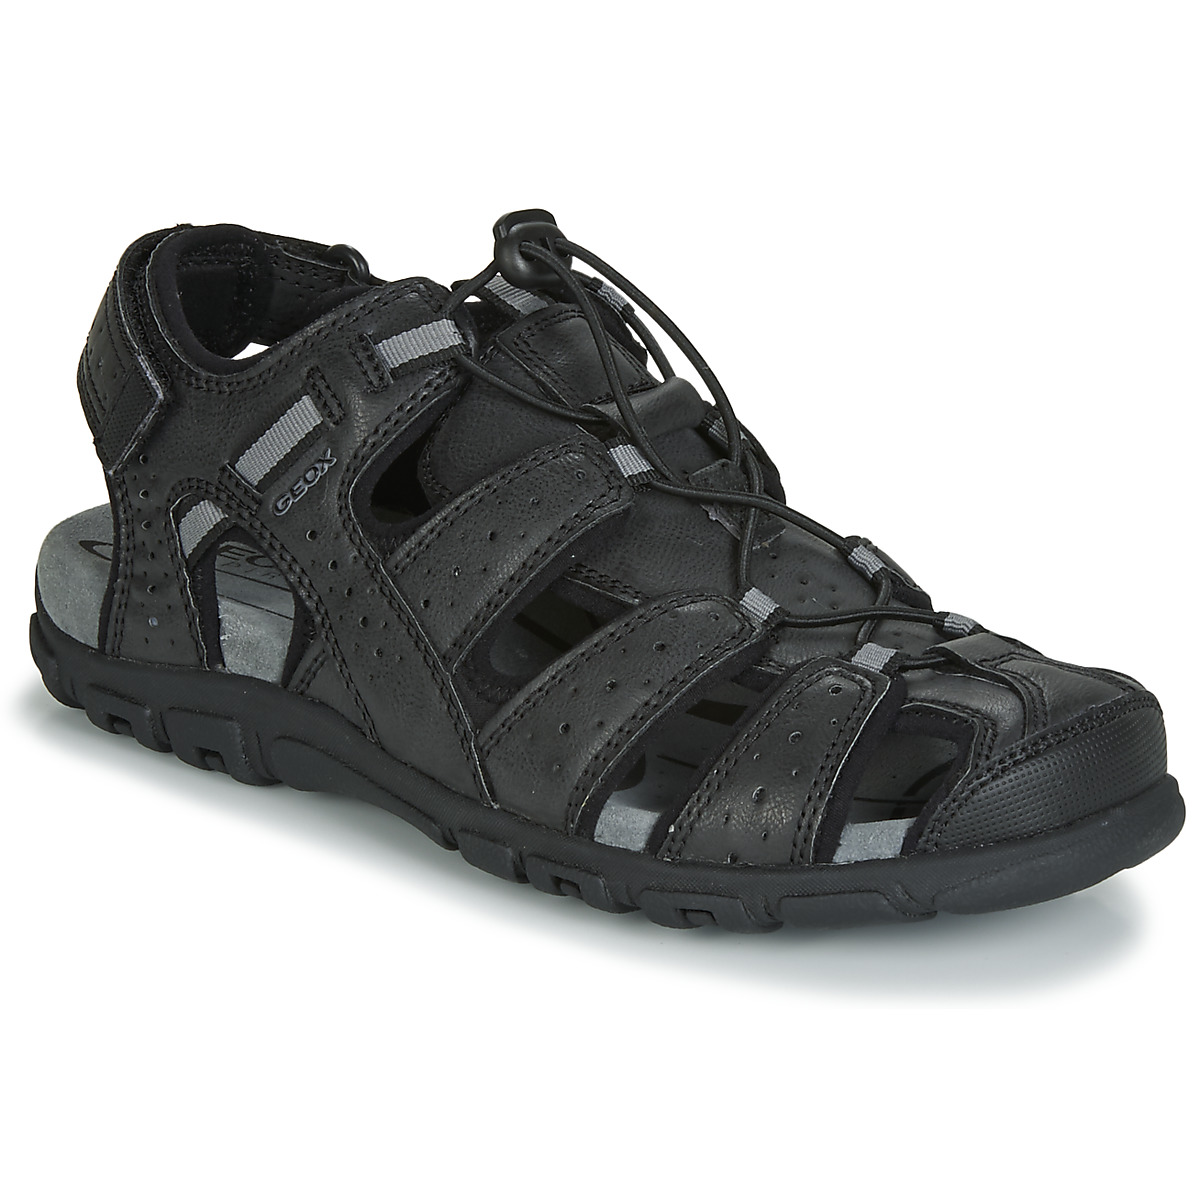 Abandonar Camello Federal  Geox UOMO SANDAL STRADA Black - Fast delivery | Spartoo Europe ! - Shoes  Sandals Men 80,00 €